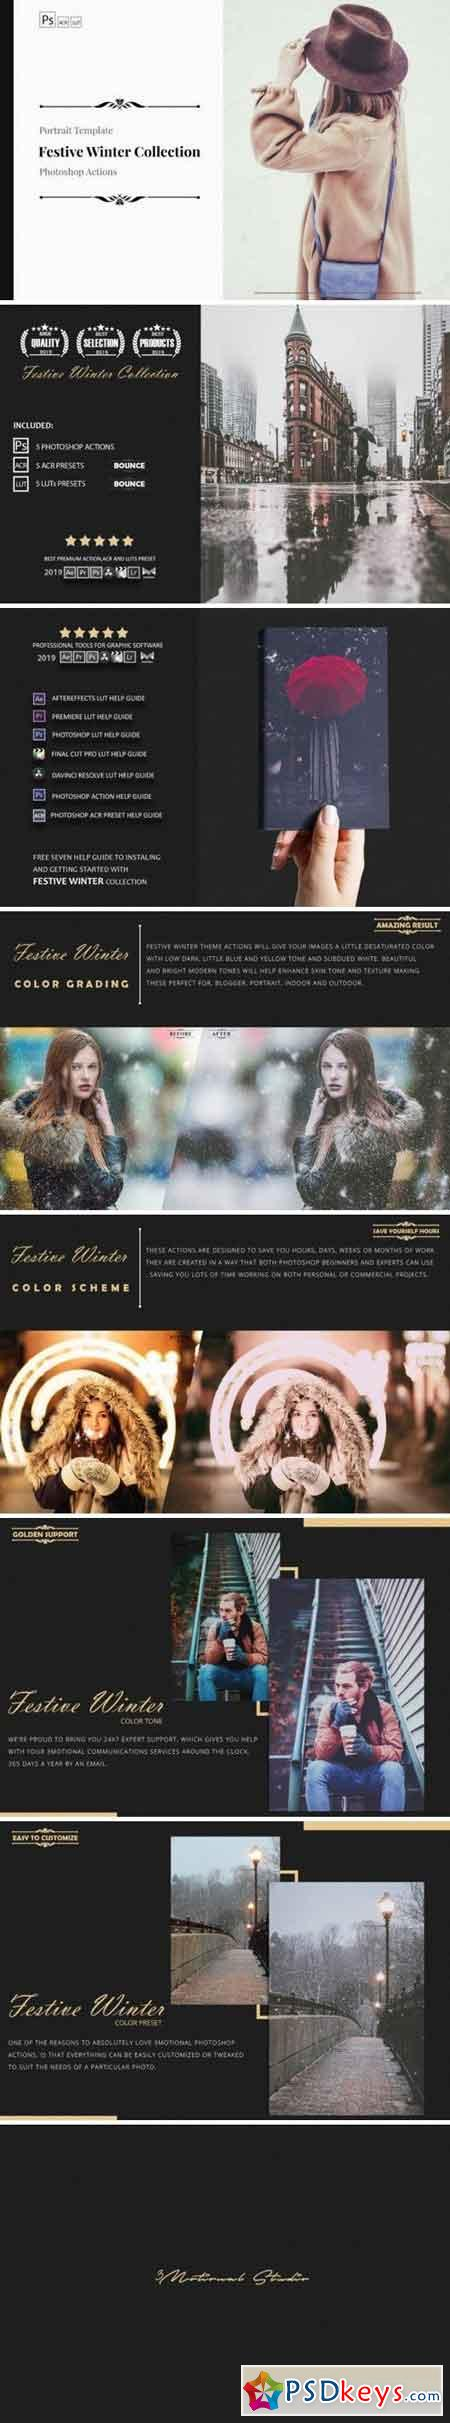 Neo Festive Winter Story Color Grading photoshop actions 3524674